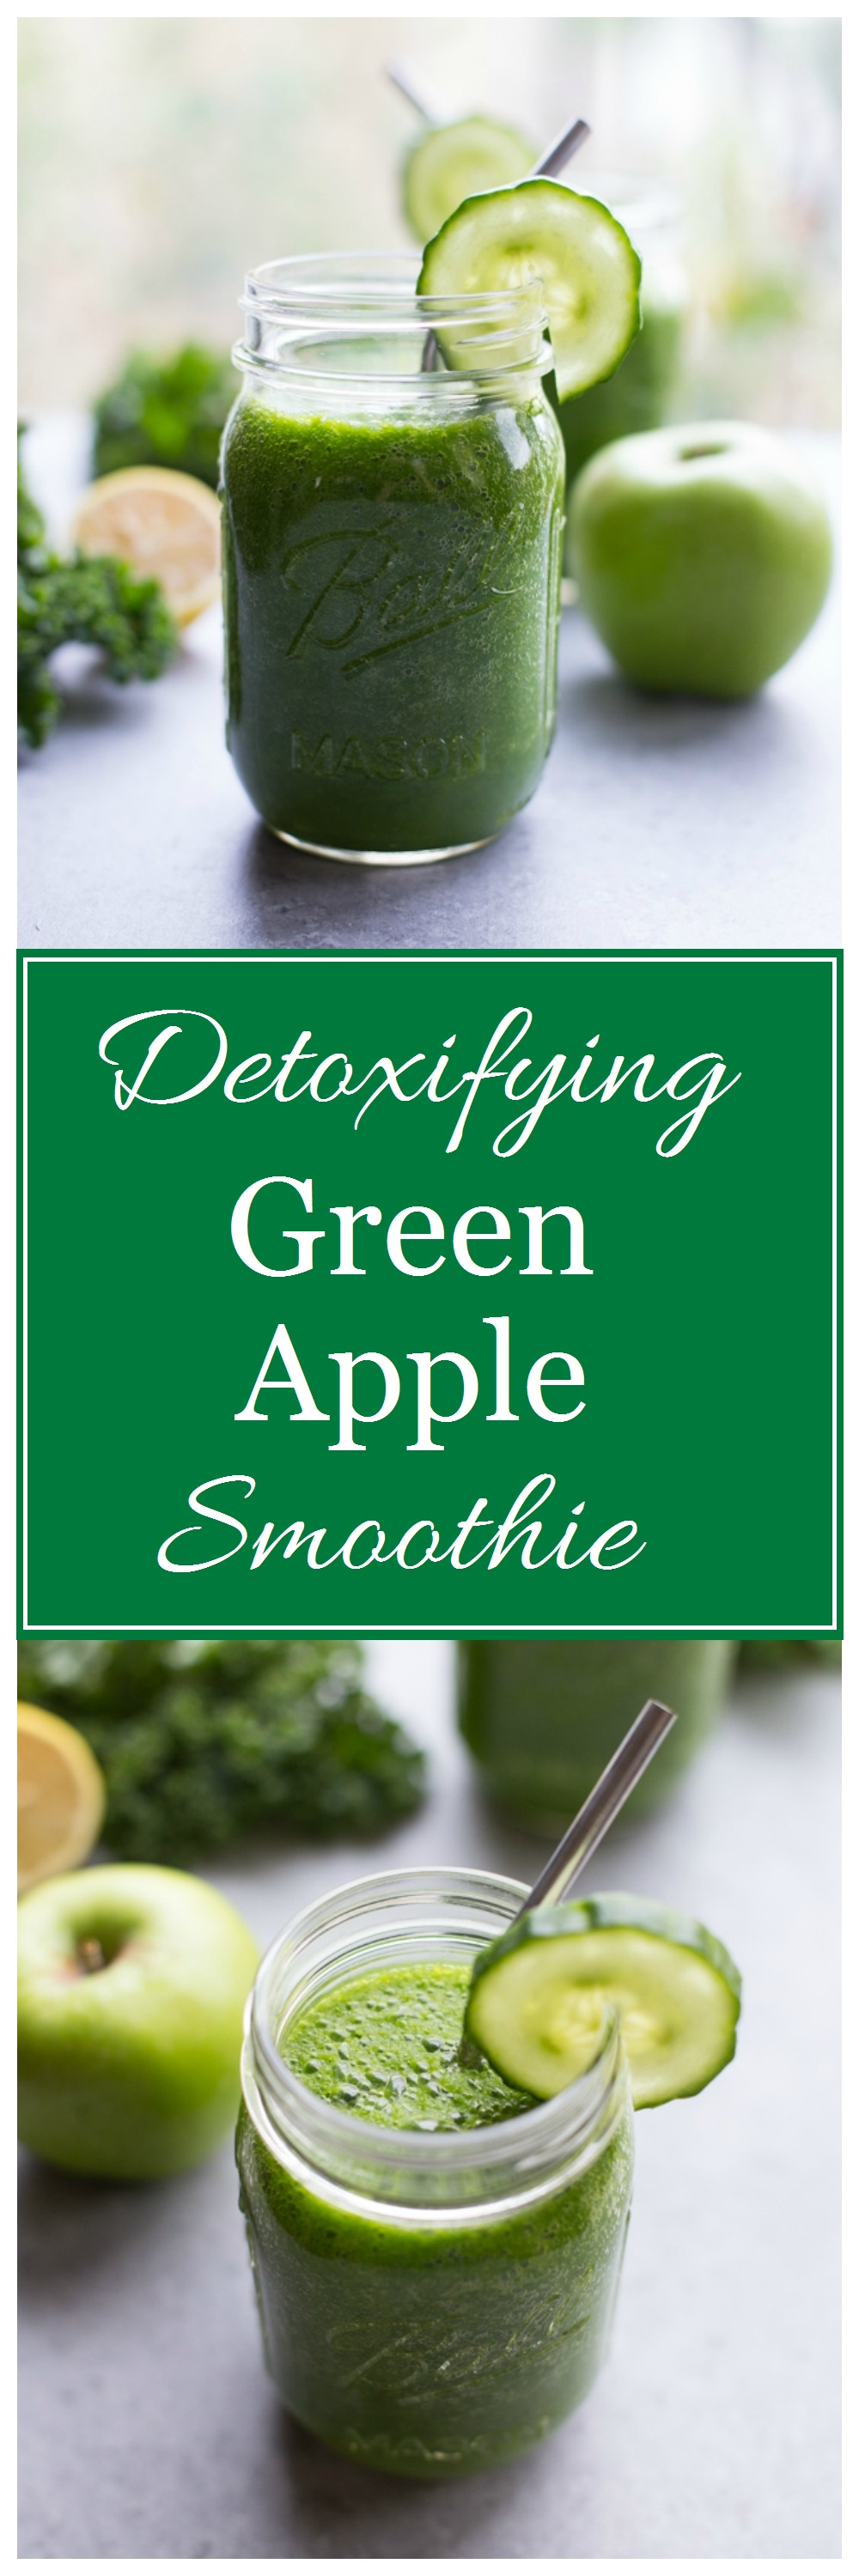 Detoxifying Green Apple Smoothie- packed full of nutrients that will make you glow from the inside out! #detox #plantbased